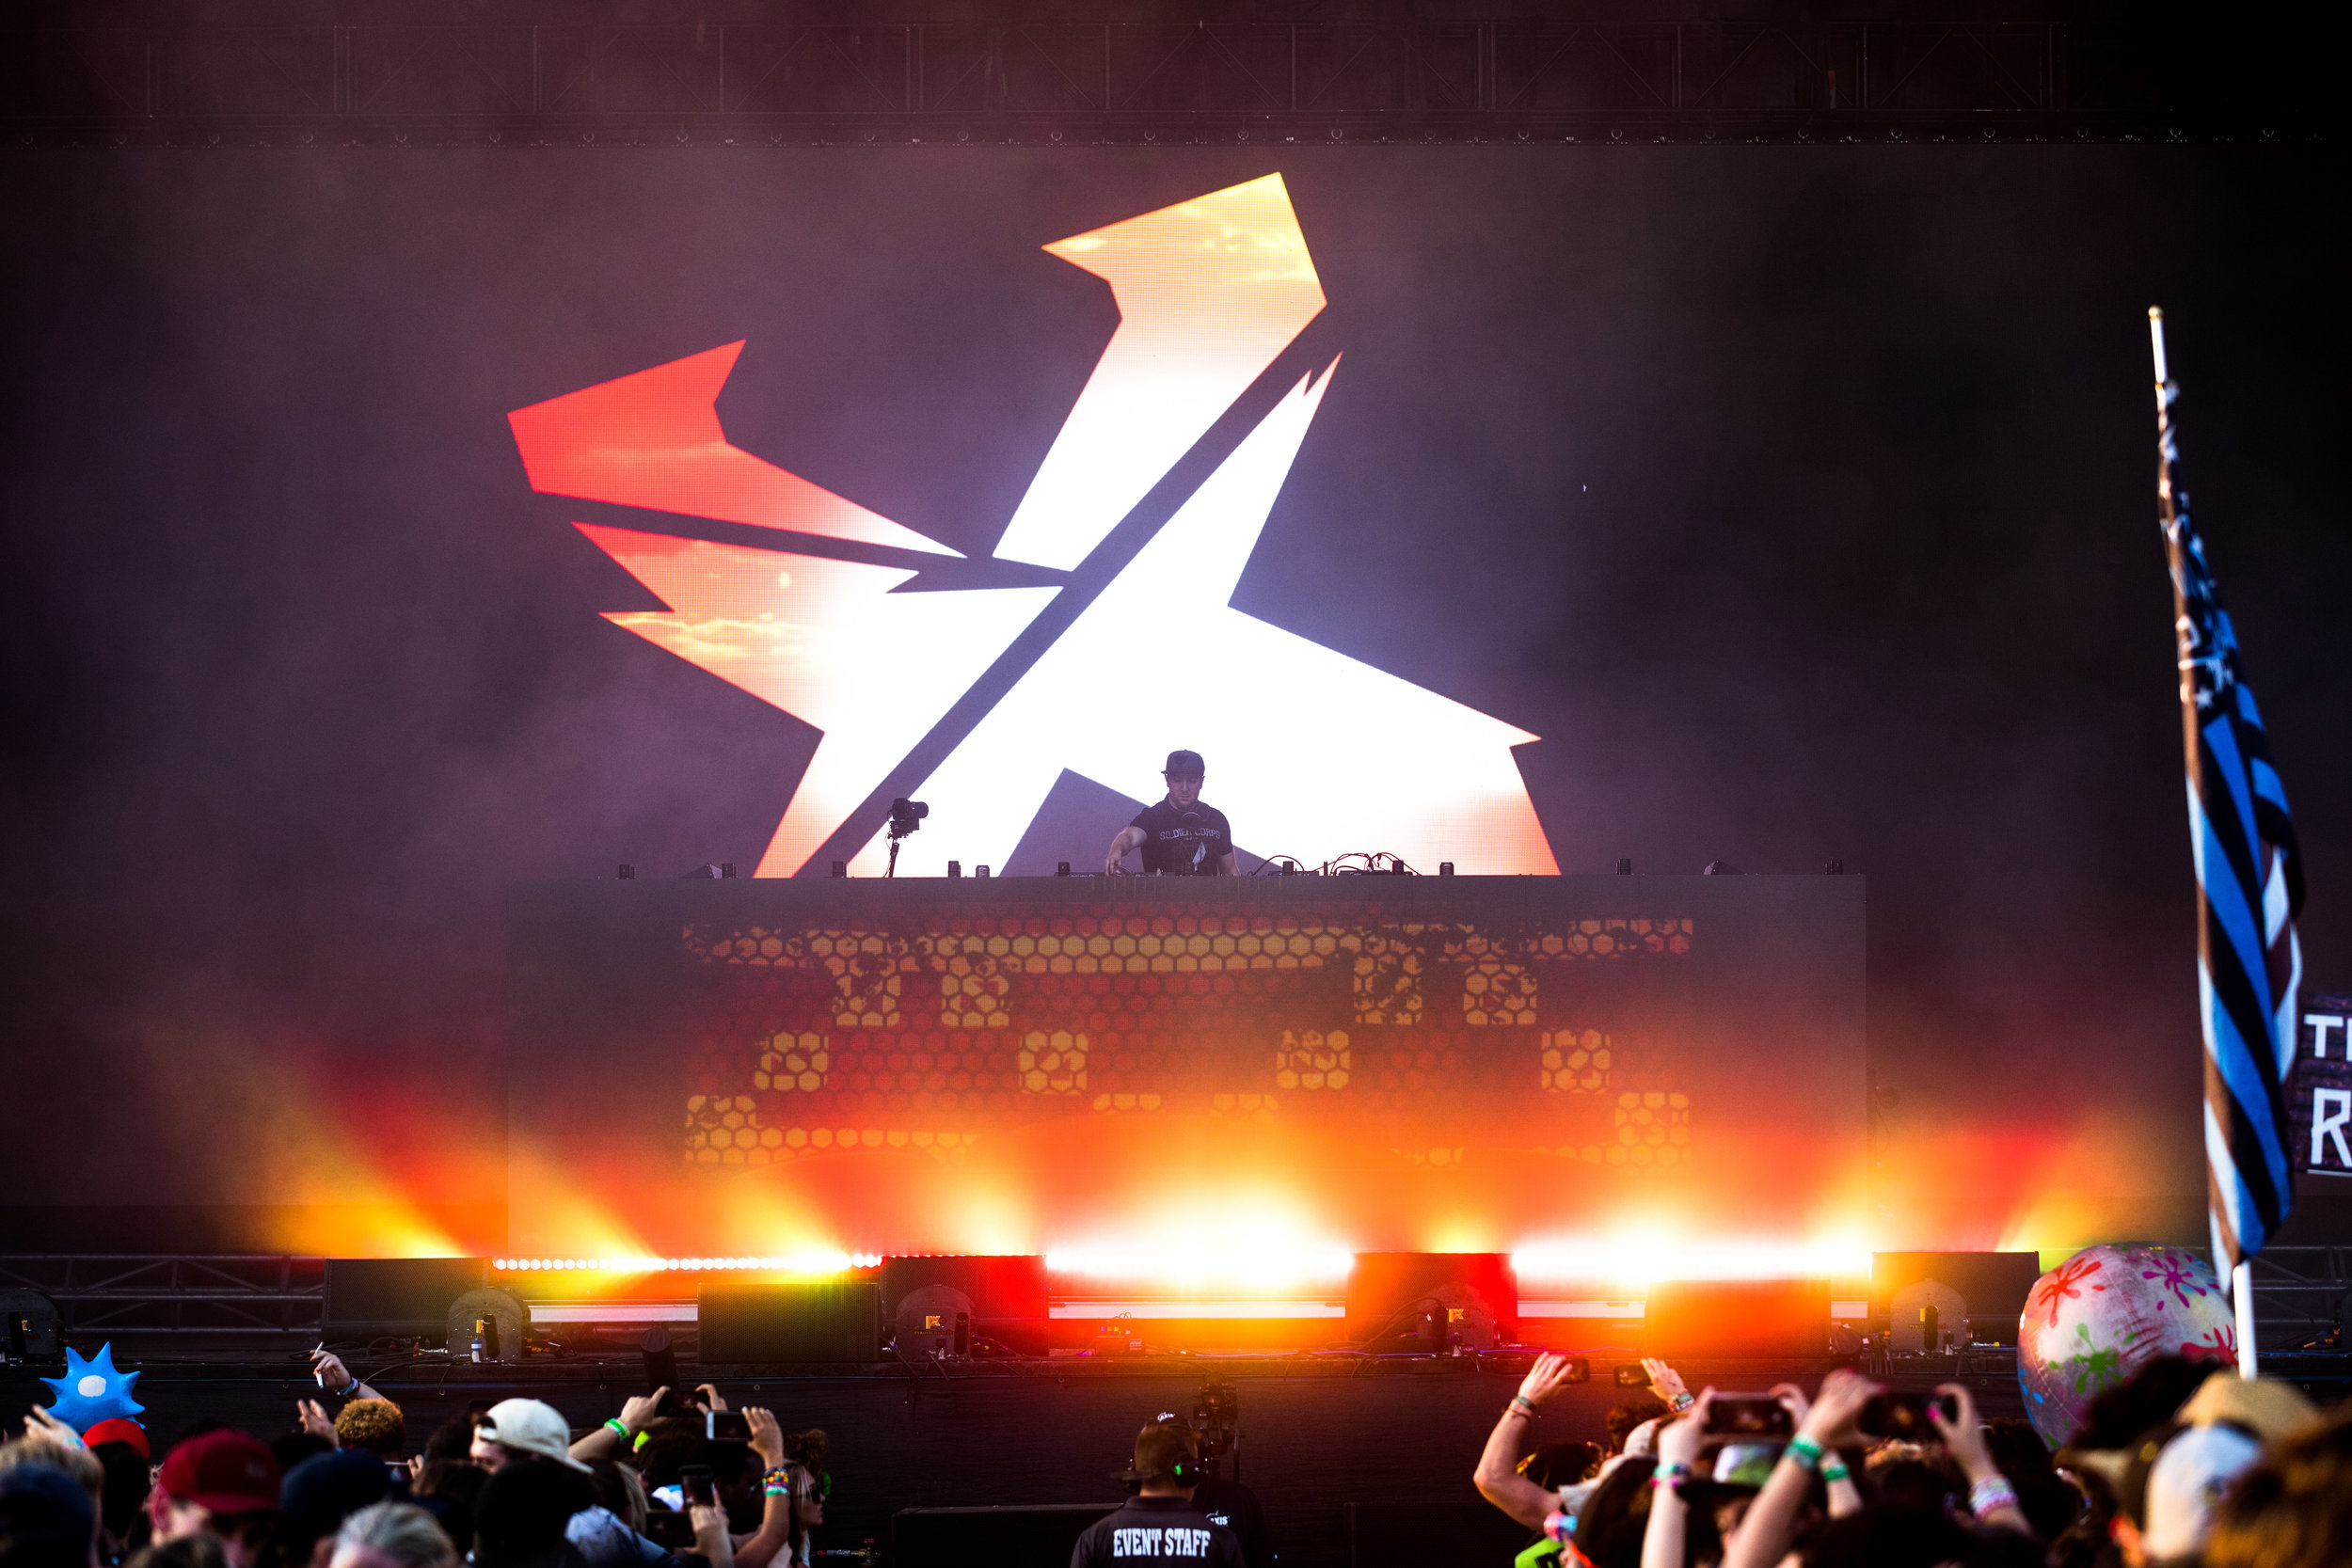 Poulos_ShakyBeats18_Excision-7.JPG